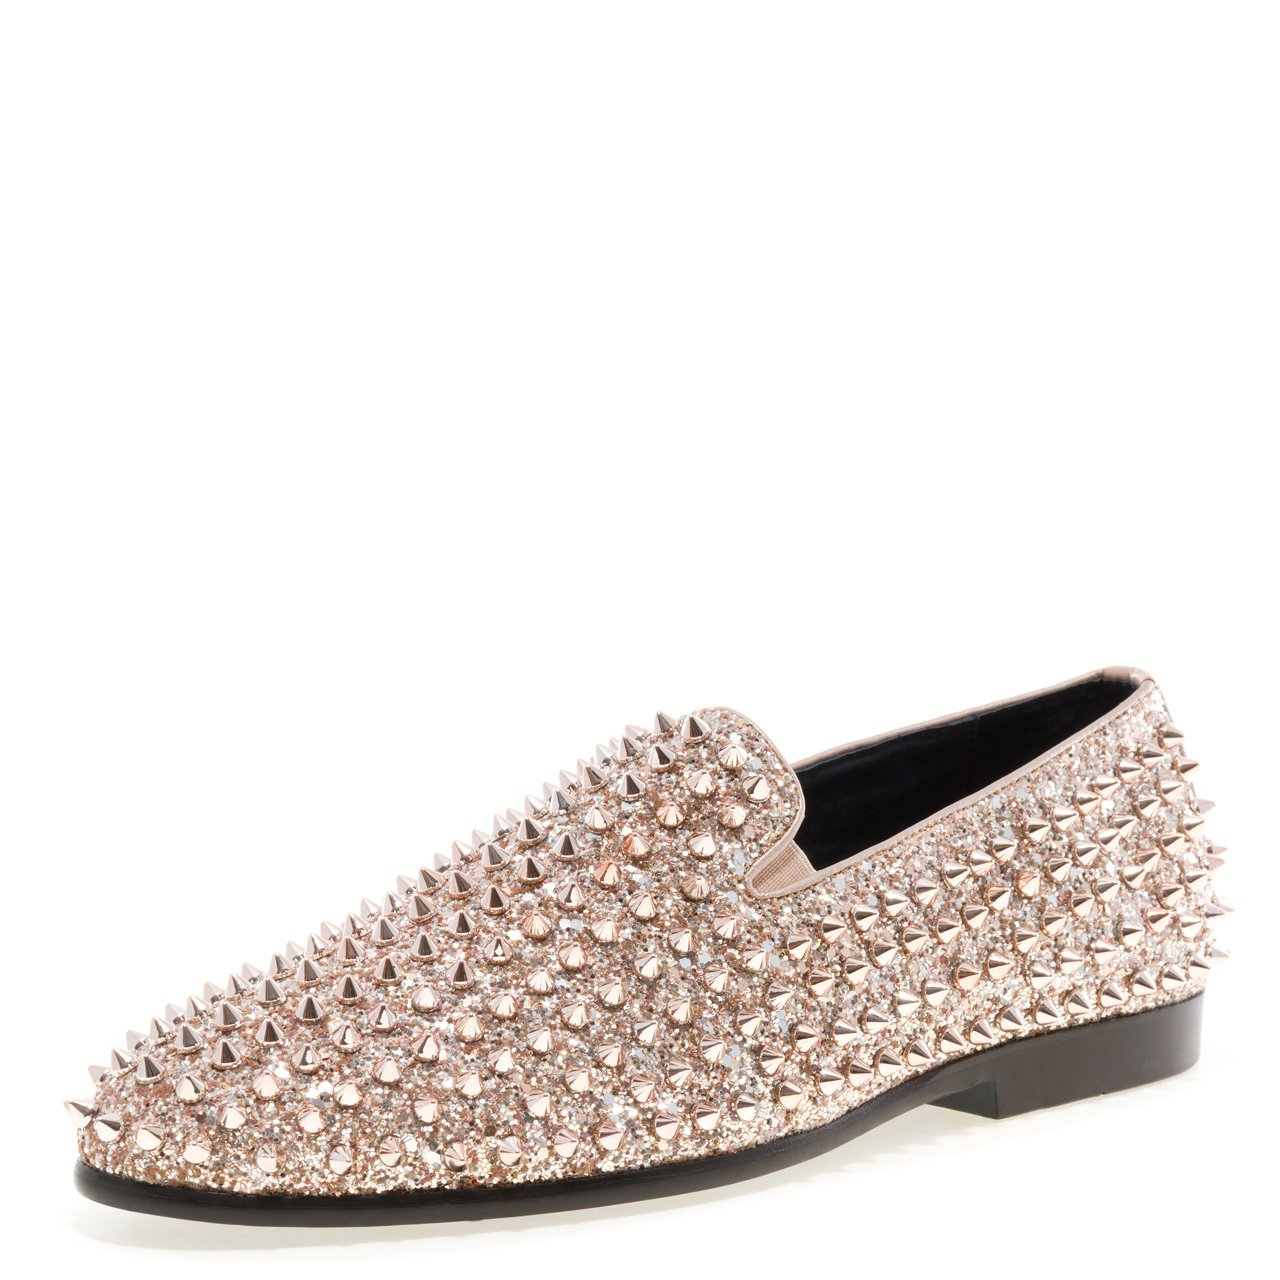 JUMP NEWYORK Men's Luxor Round Toe Textile and Leather Metallic Spike Slip-On Smoking Slipper Dress Loafer Rosegold 10 D US Men